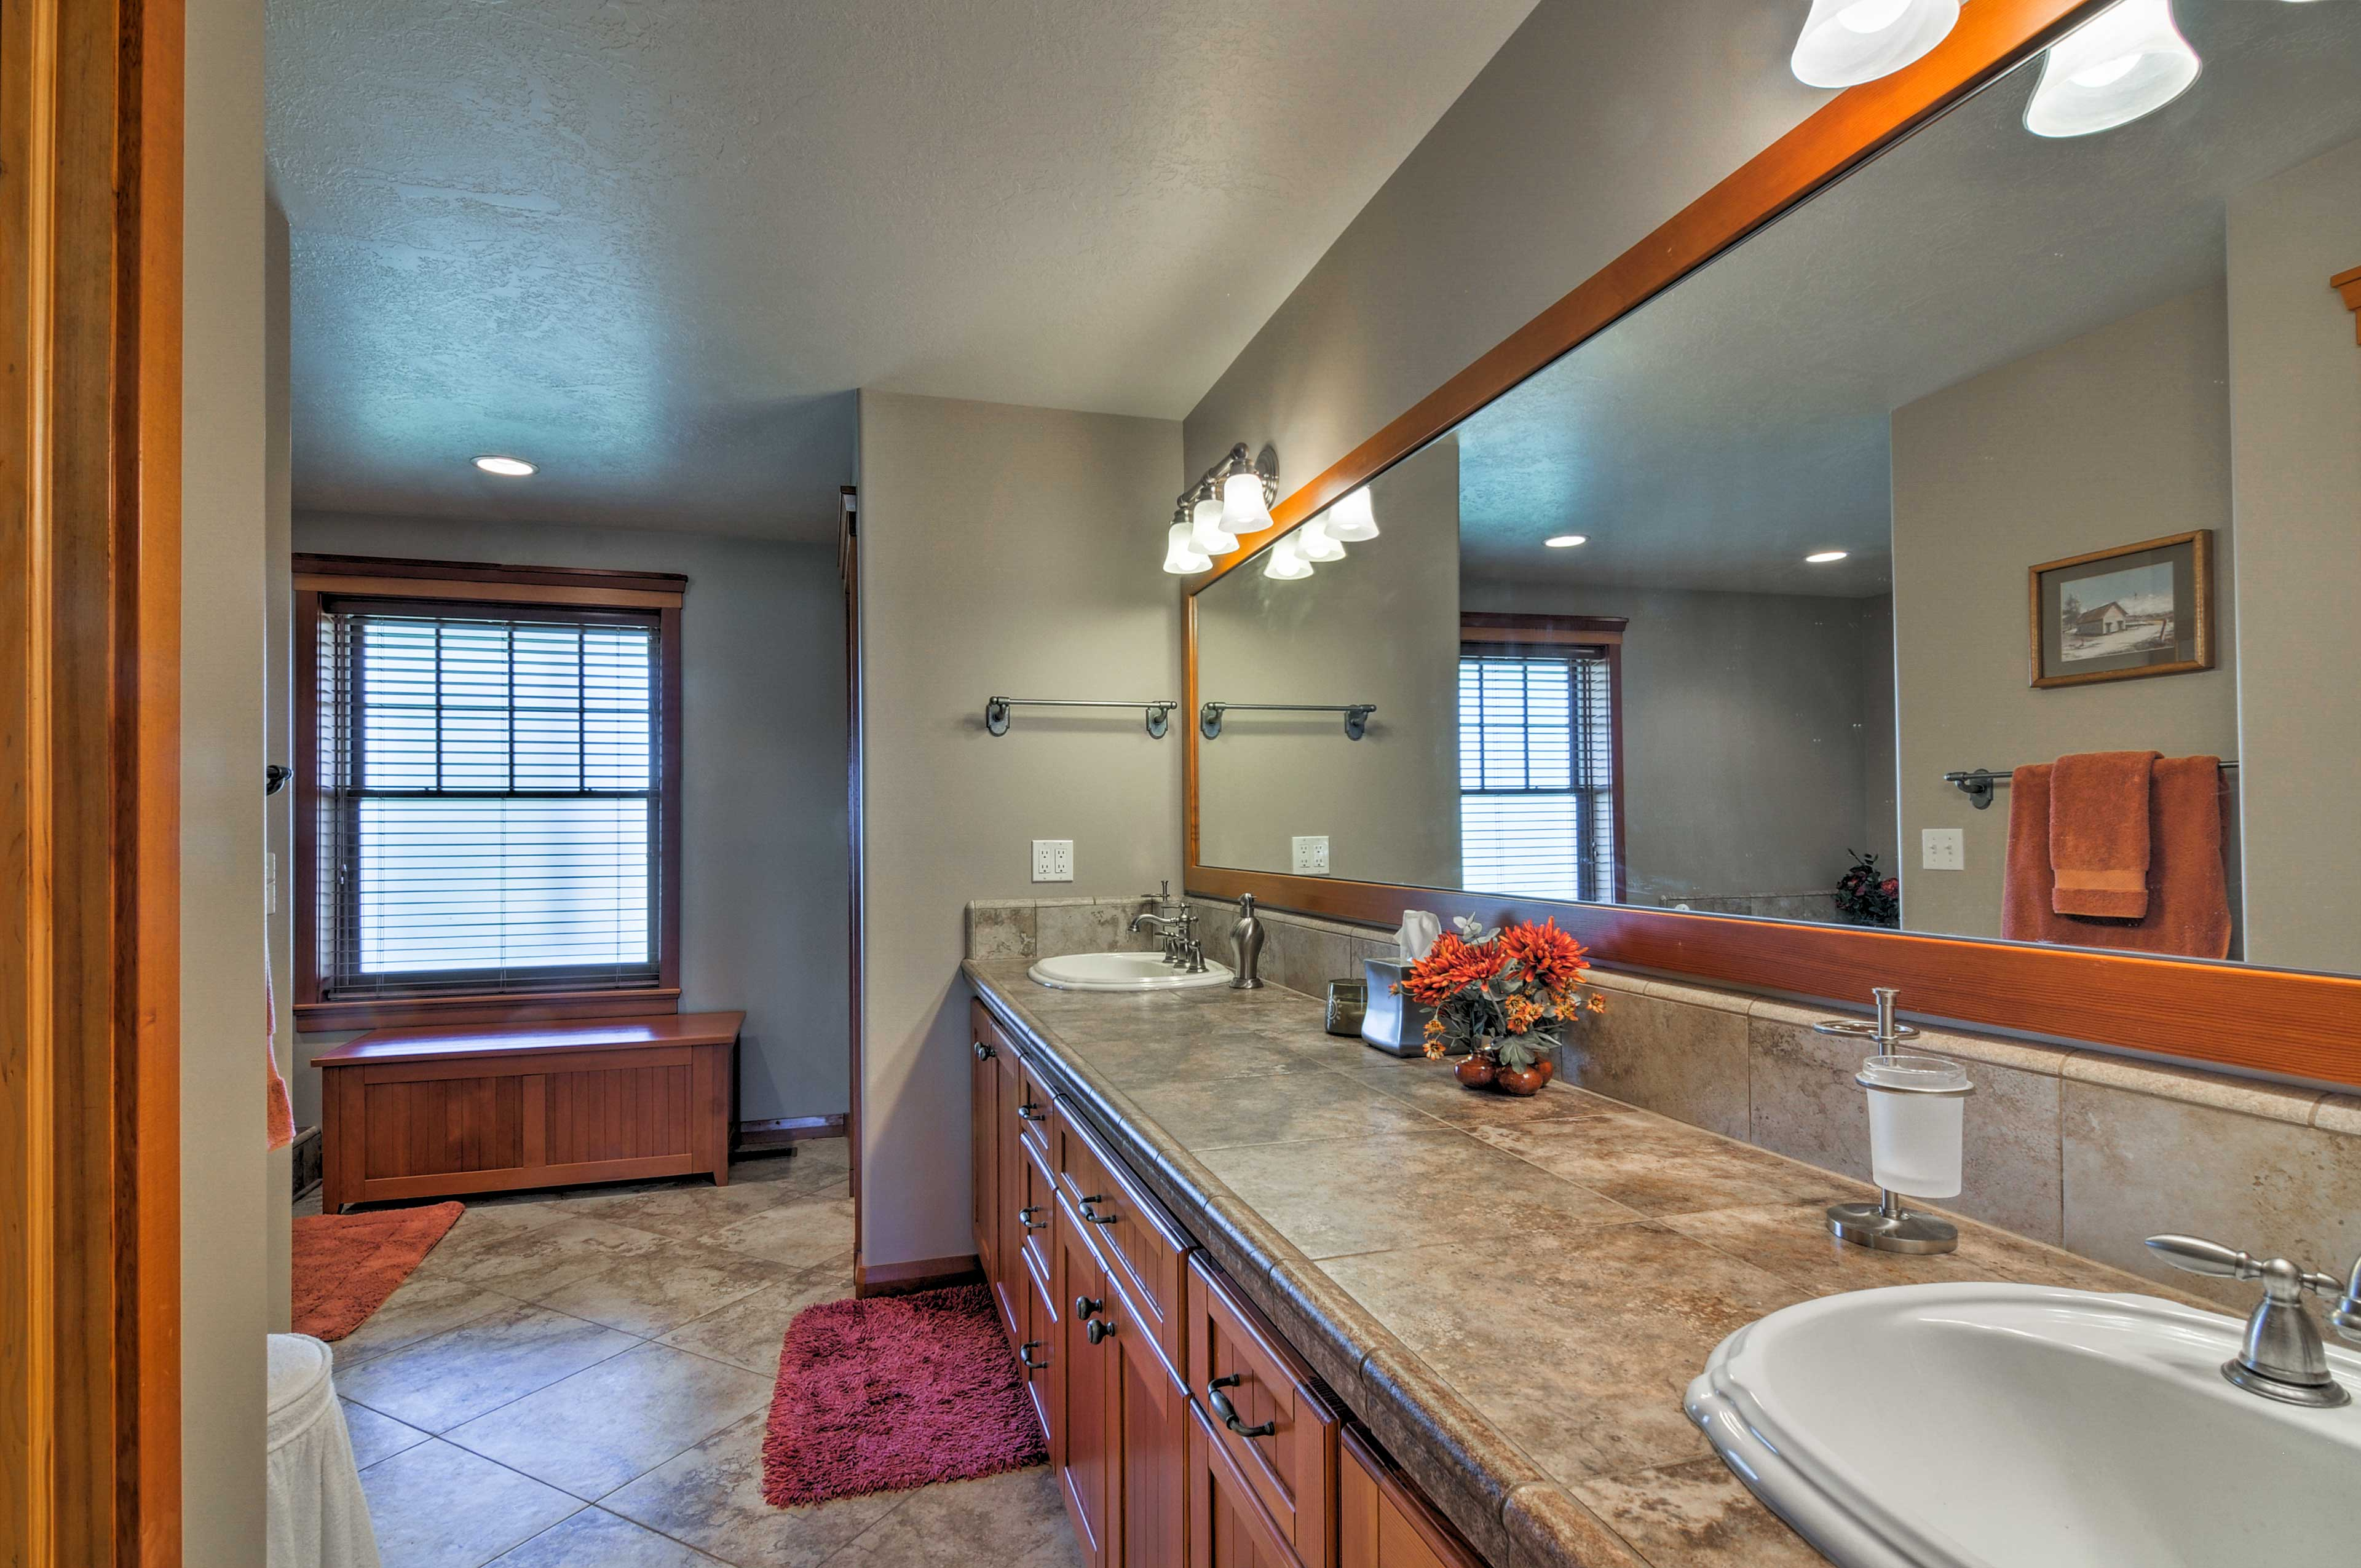 The master suite boasts a spacious private bath with an extensive double vanity.